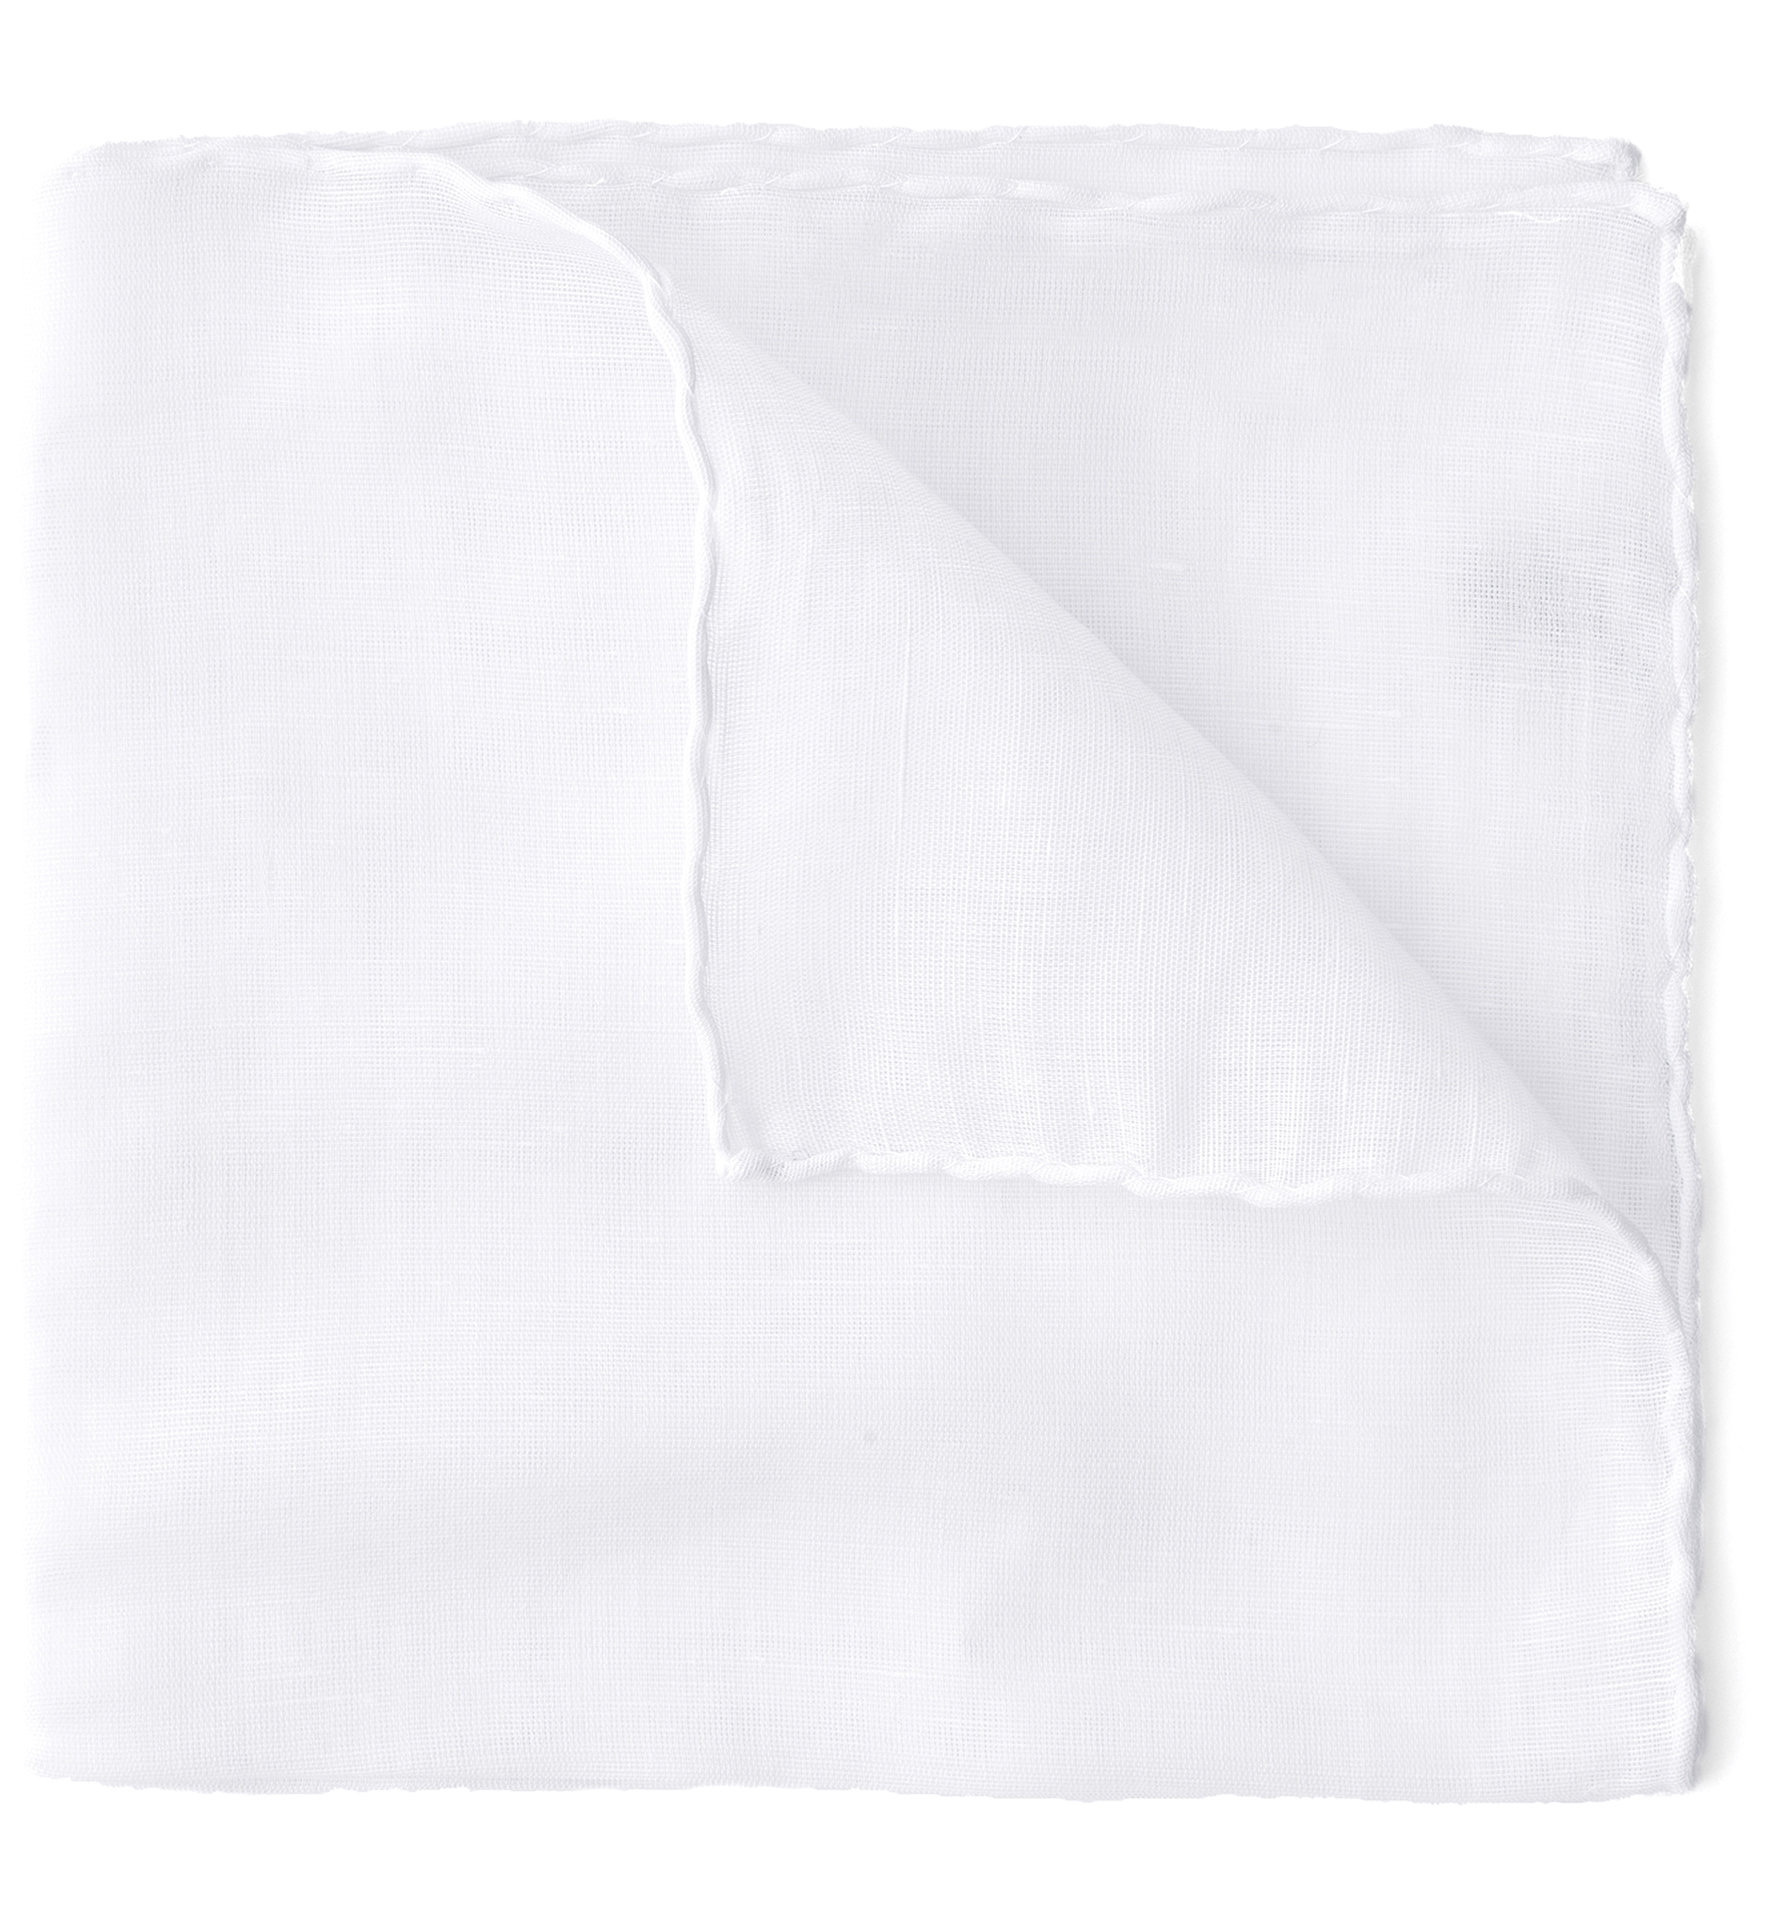 Zoom Image of White Cotton and Linen Pocket Square